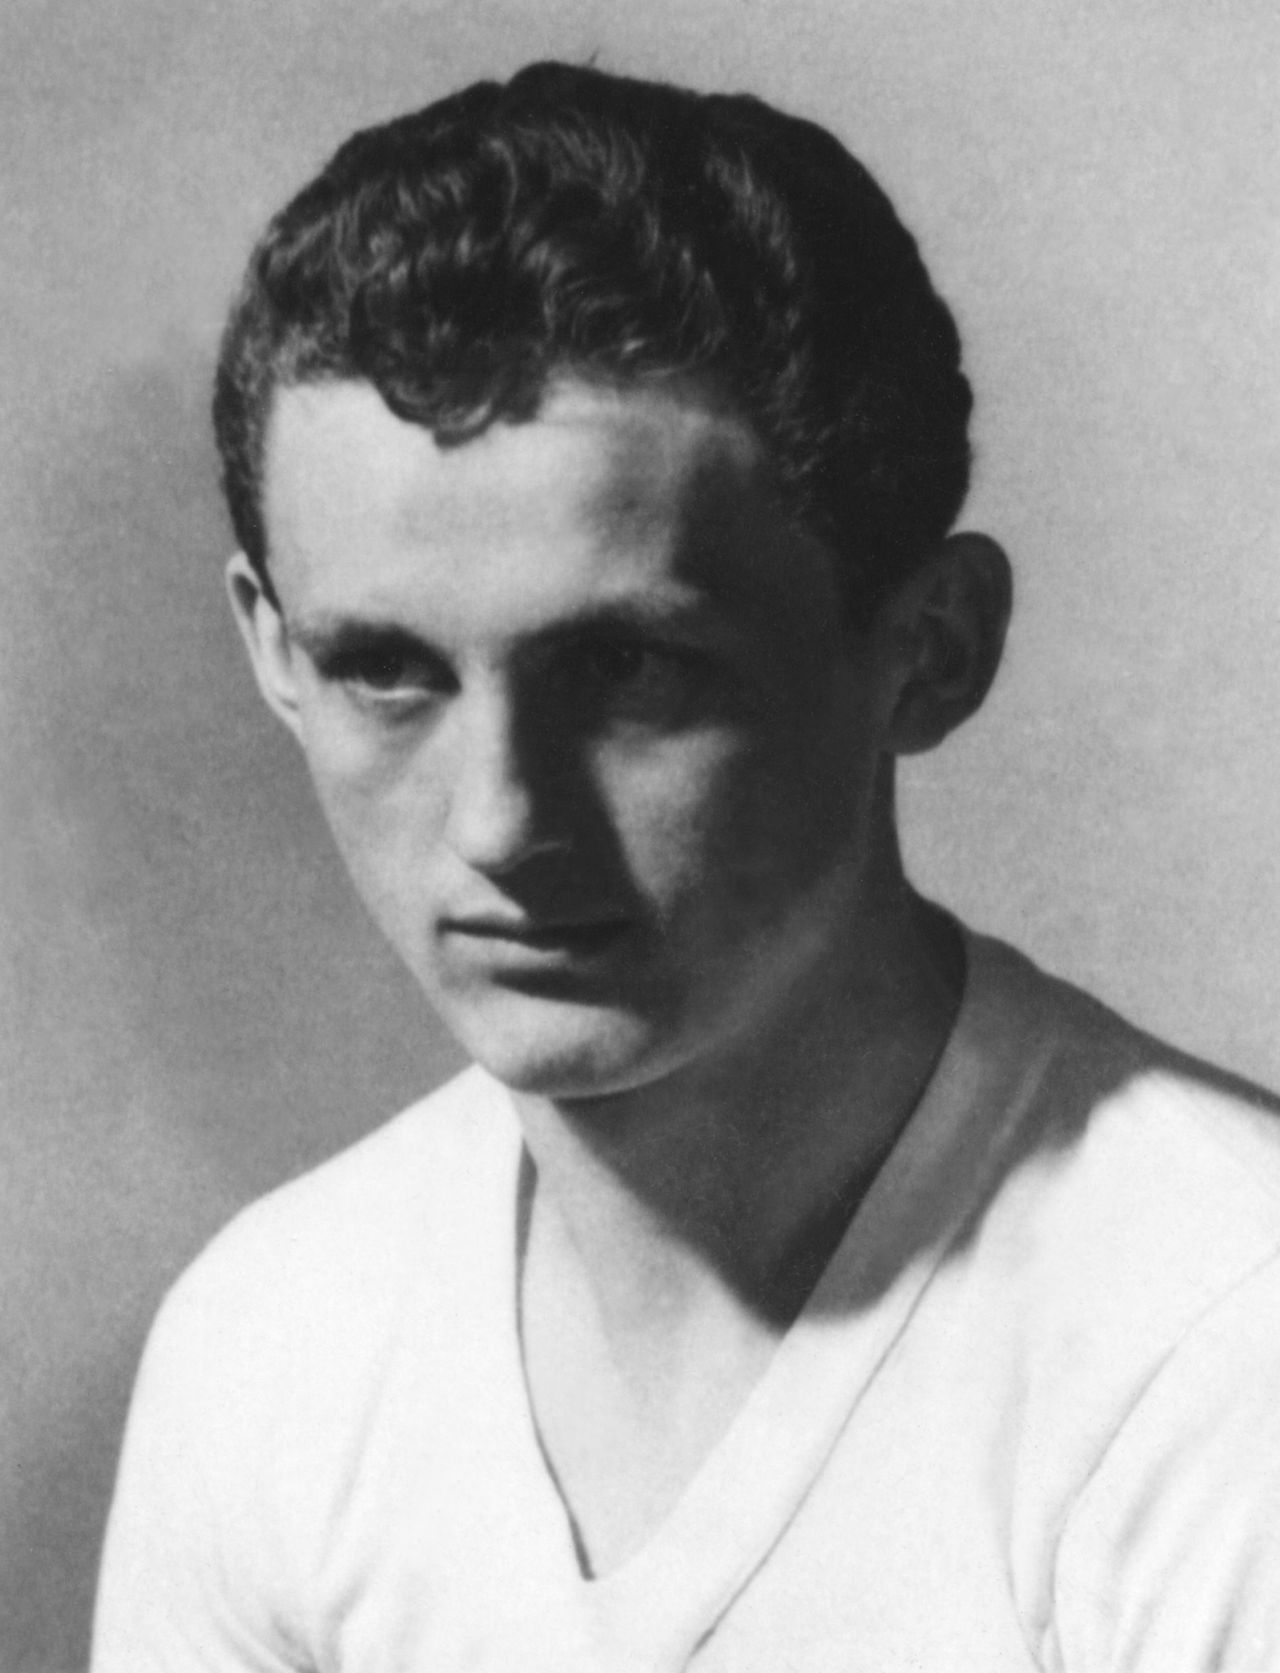 (FILES) - Portrait taken in Budapest in the 50's of forward Florian Albert who played for the Hungarian national soccer team. Florian Albert, the former Hungary striker and European Footballer of the Year, has died in hospital at the age of 70, the Hungarian news agency MTI said on October 31, 2011. Albert died early morning on Monday following heart bypass surgery carried out on Friday.